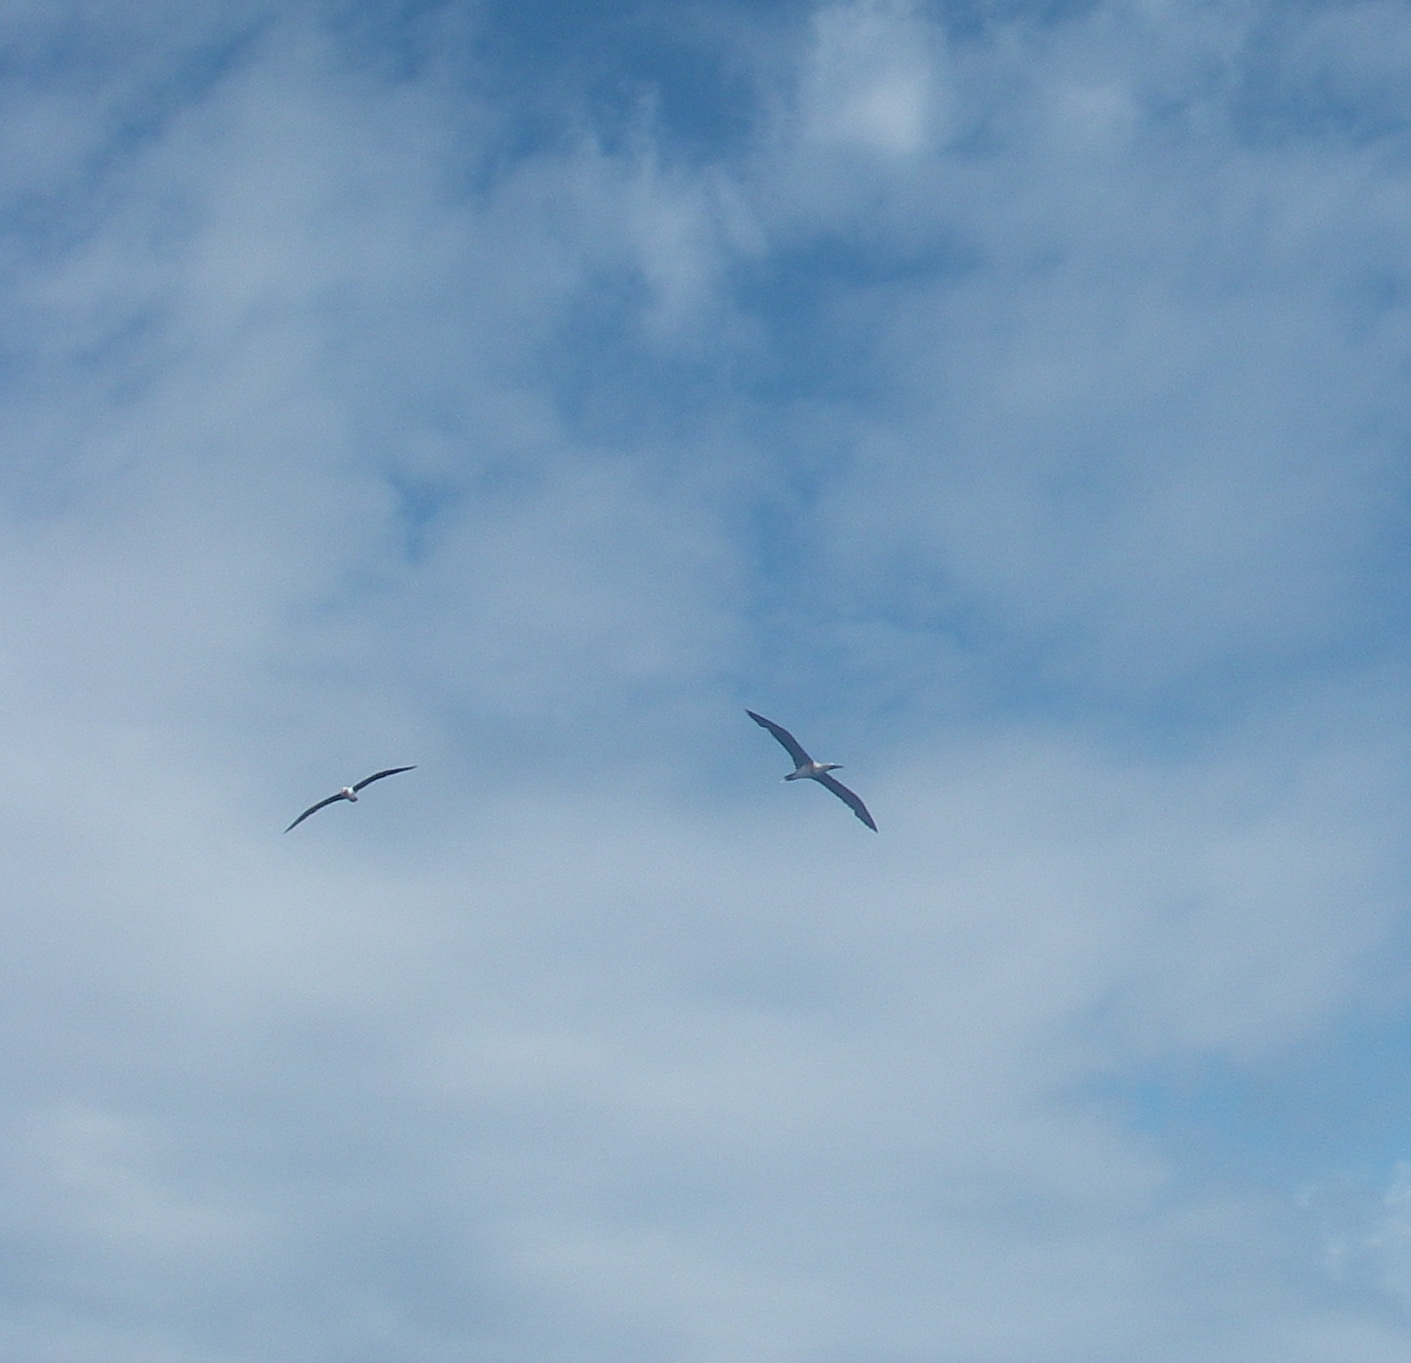 30-magnificent-sea-birds-appeared-from-over-the-horizon-and-flew-around-joyful-welcoming-us-to-australia